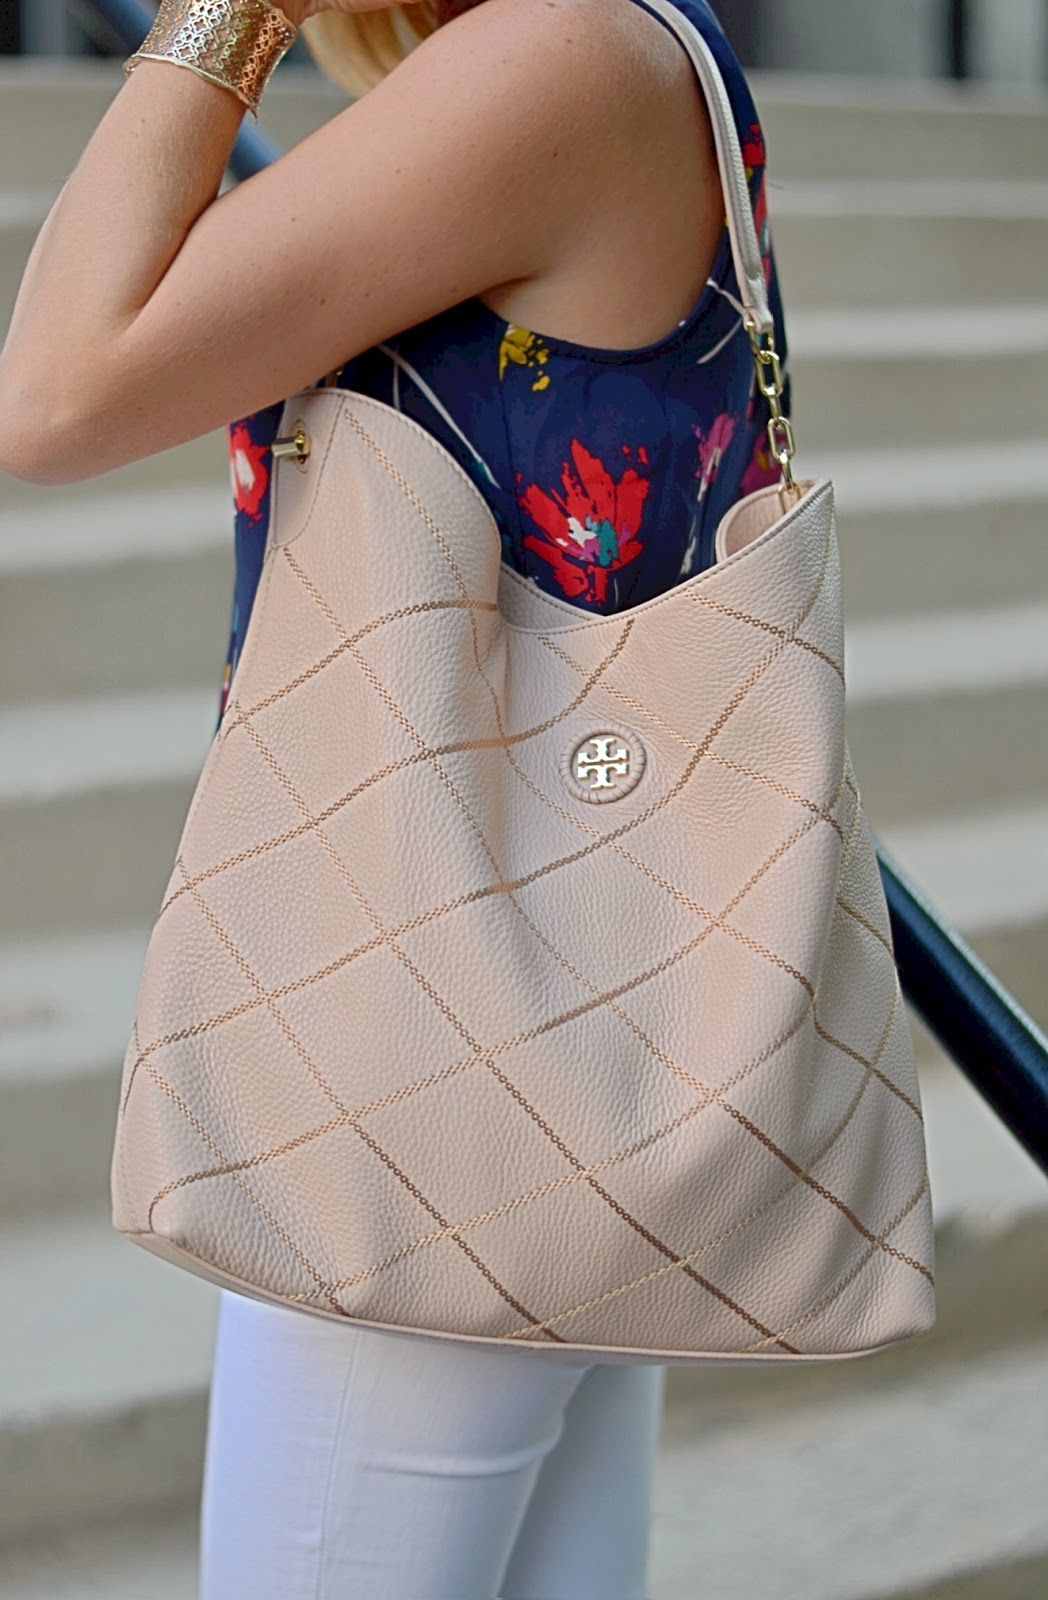 e0d6ef14a9 Nordstrom Anniversary Sale - Tory Burch Diamond Stitch Hobo. It's so  beautiful!